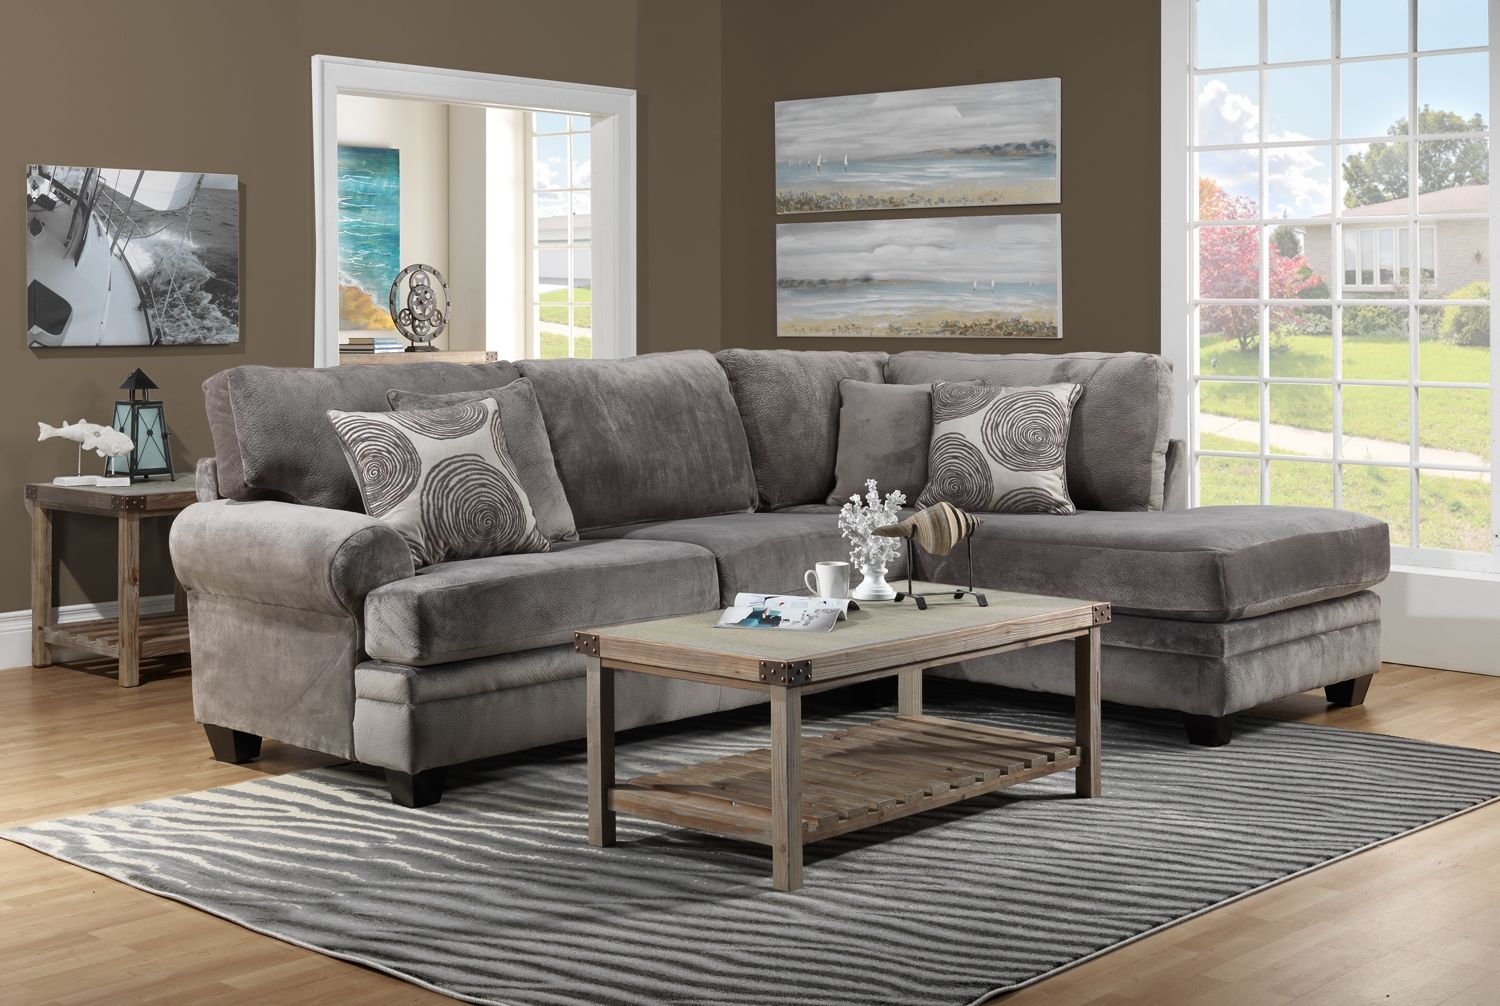 Shop leons of canadas entire furniture collection online find stylish living room bedroom dining room and kids furniture for every room in your home at